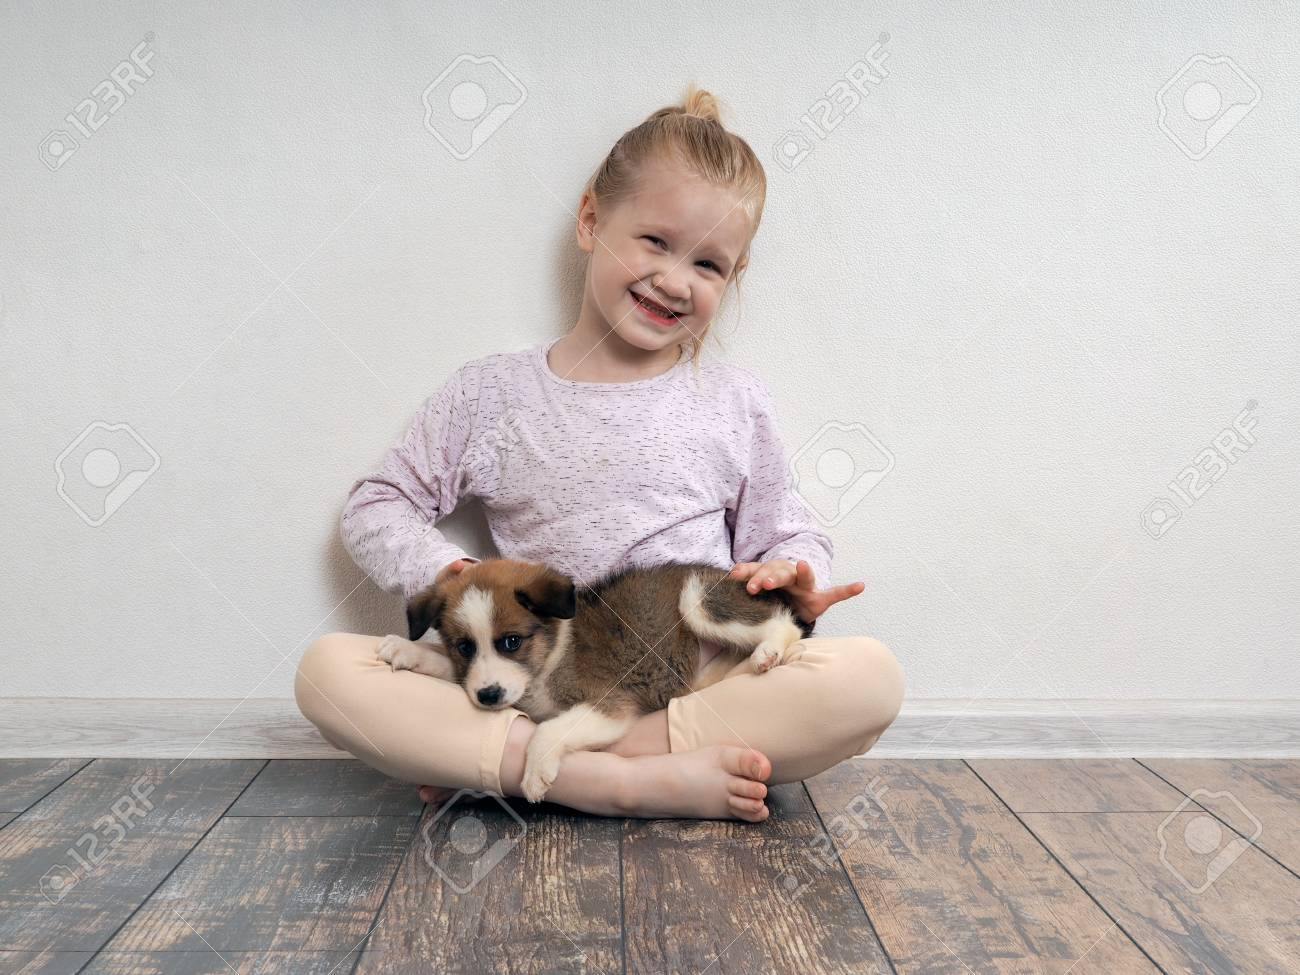 Happy Girl With Puppy On Her Lap The Child Sits On The Floor